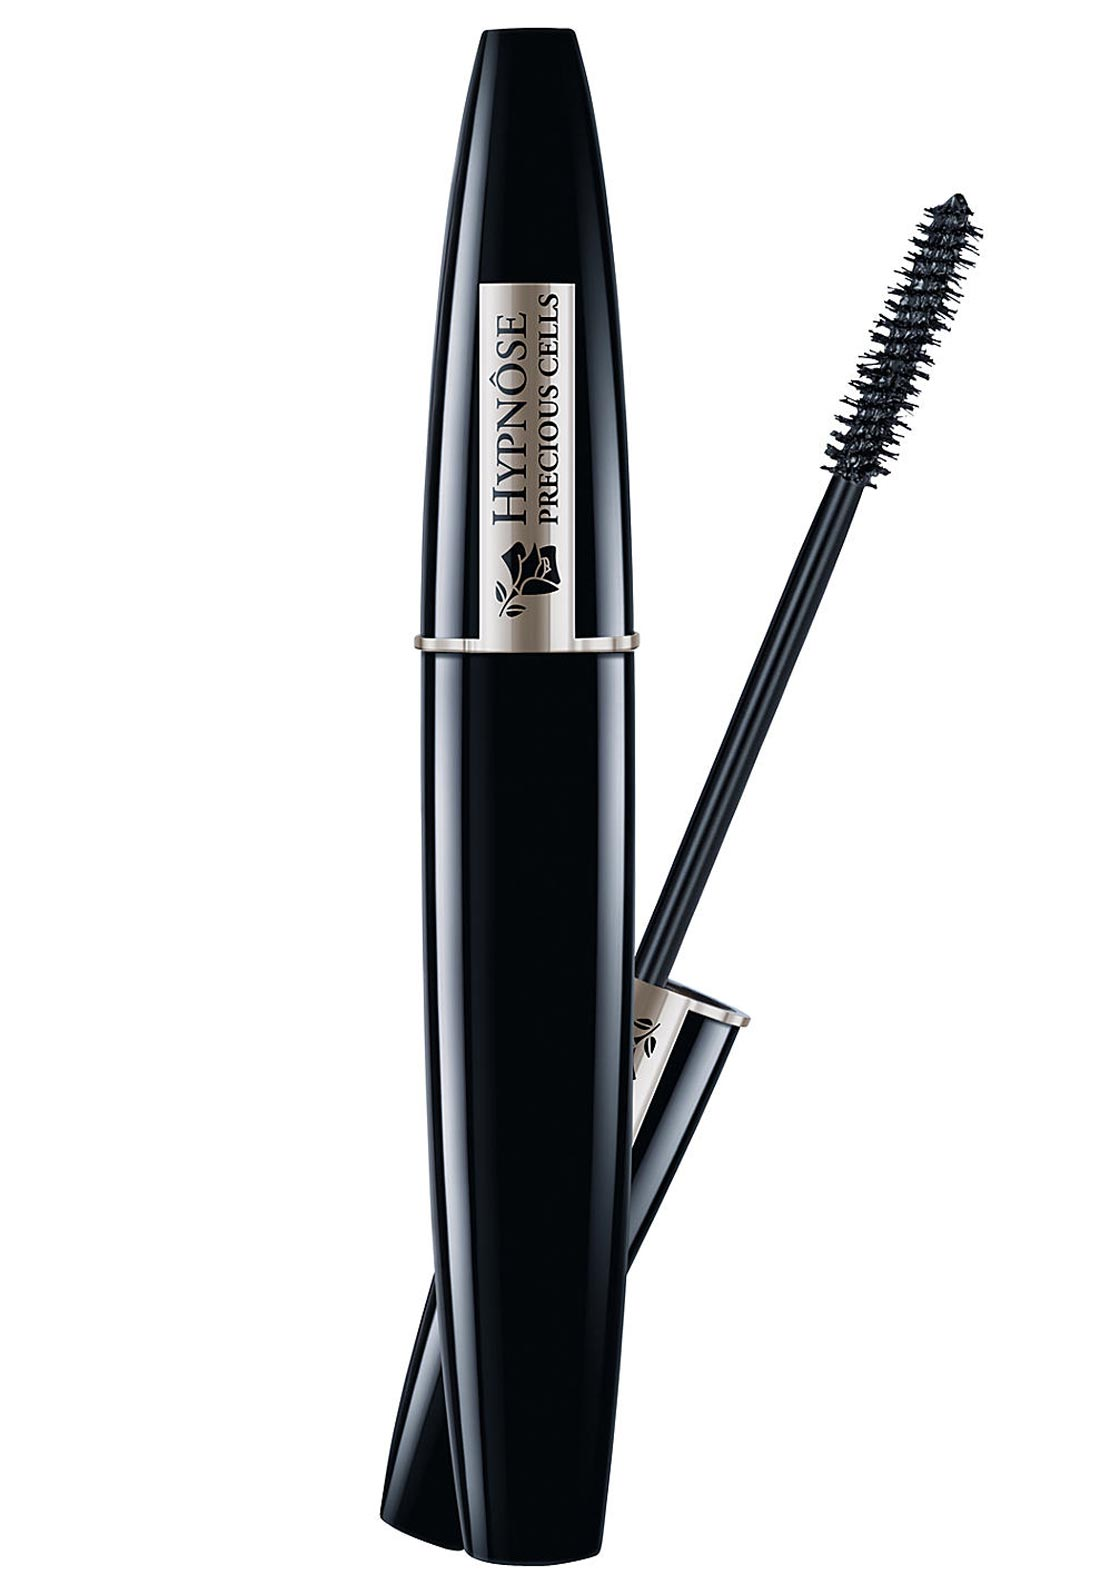 Lancome Hypnose Precious Cells Mascara Visiblement by Lancome